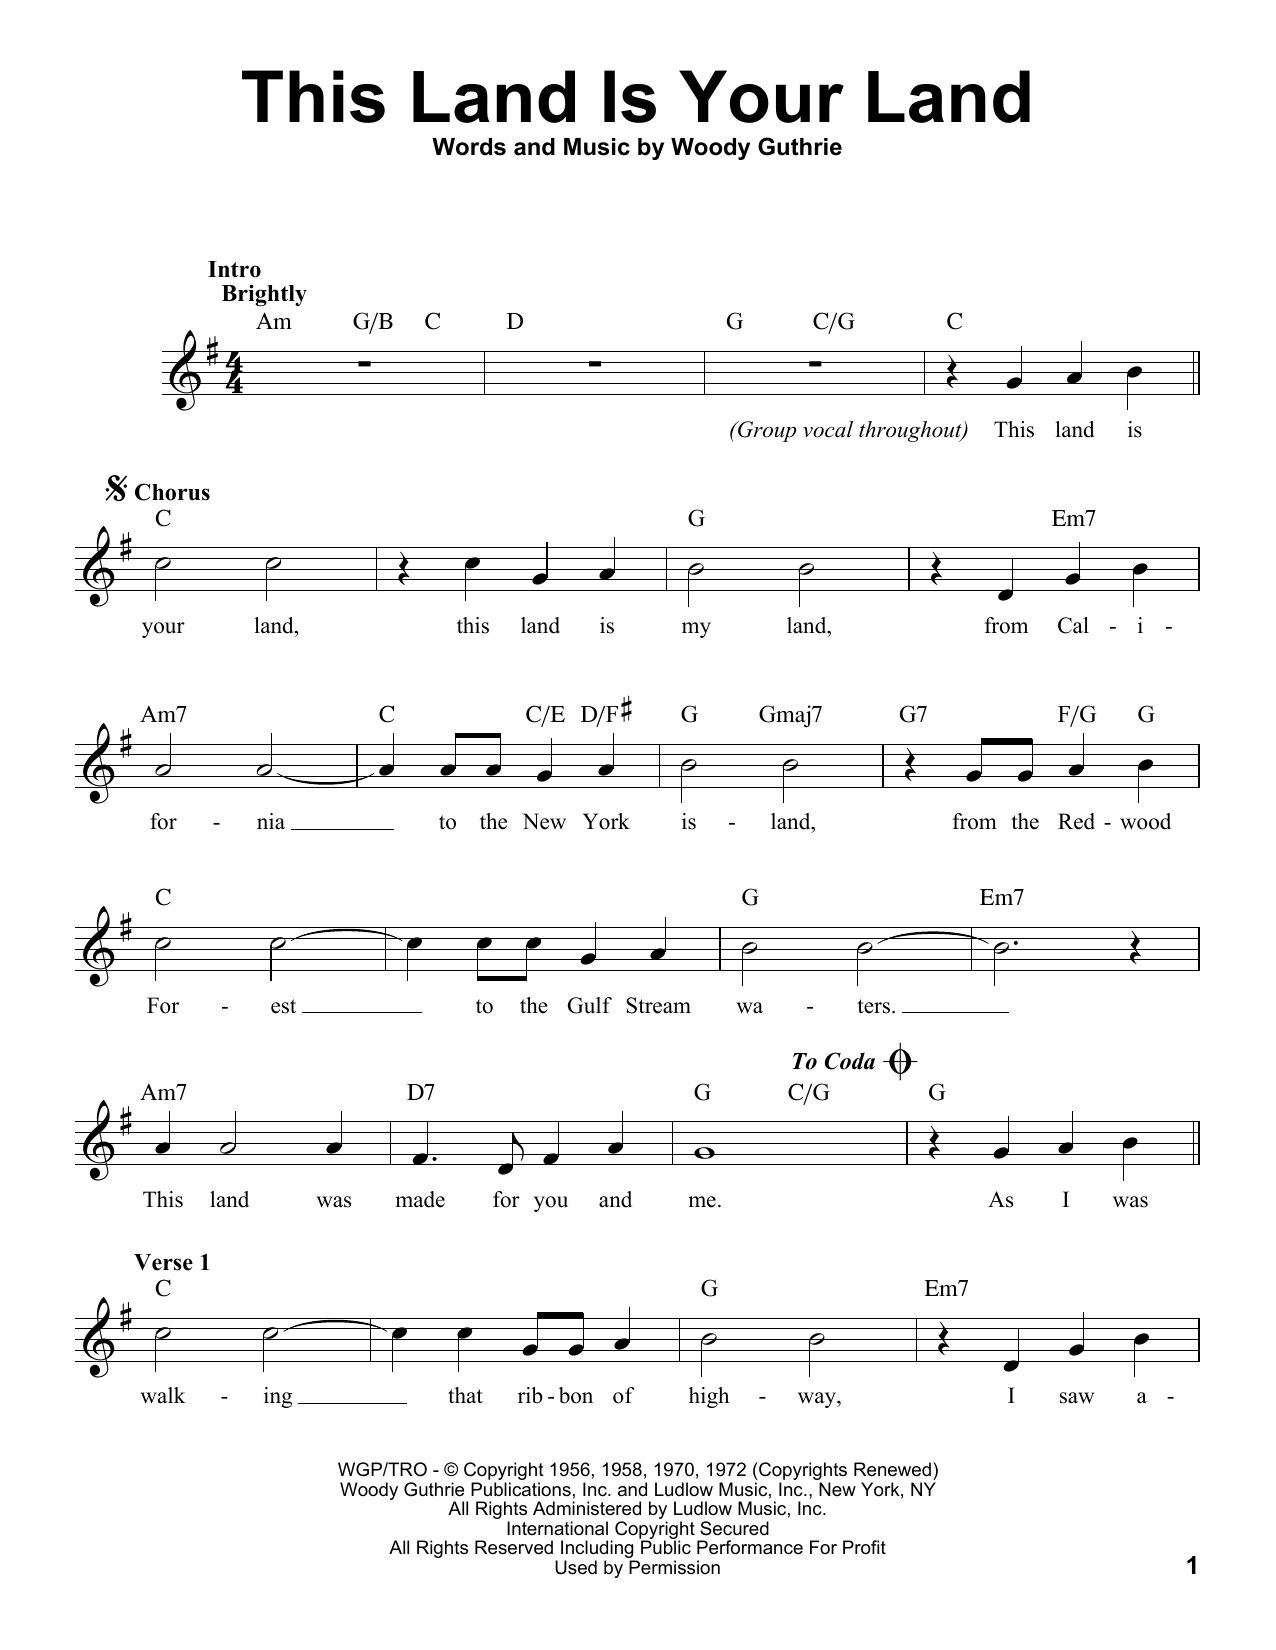 Woody Guthrie This Land Is Your Land Sheet Music Notes Chords